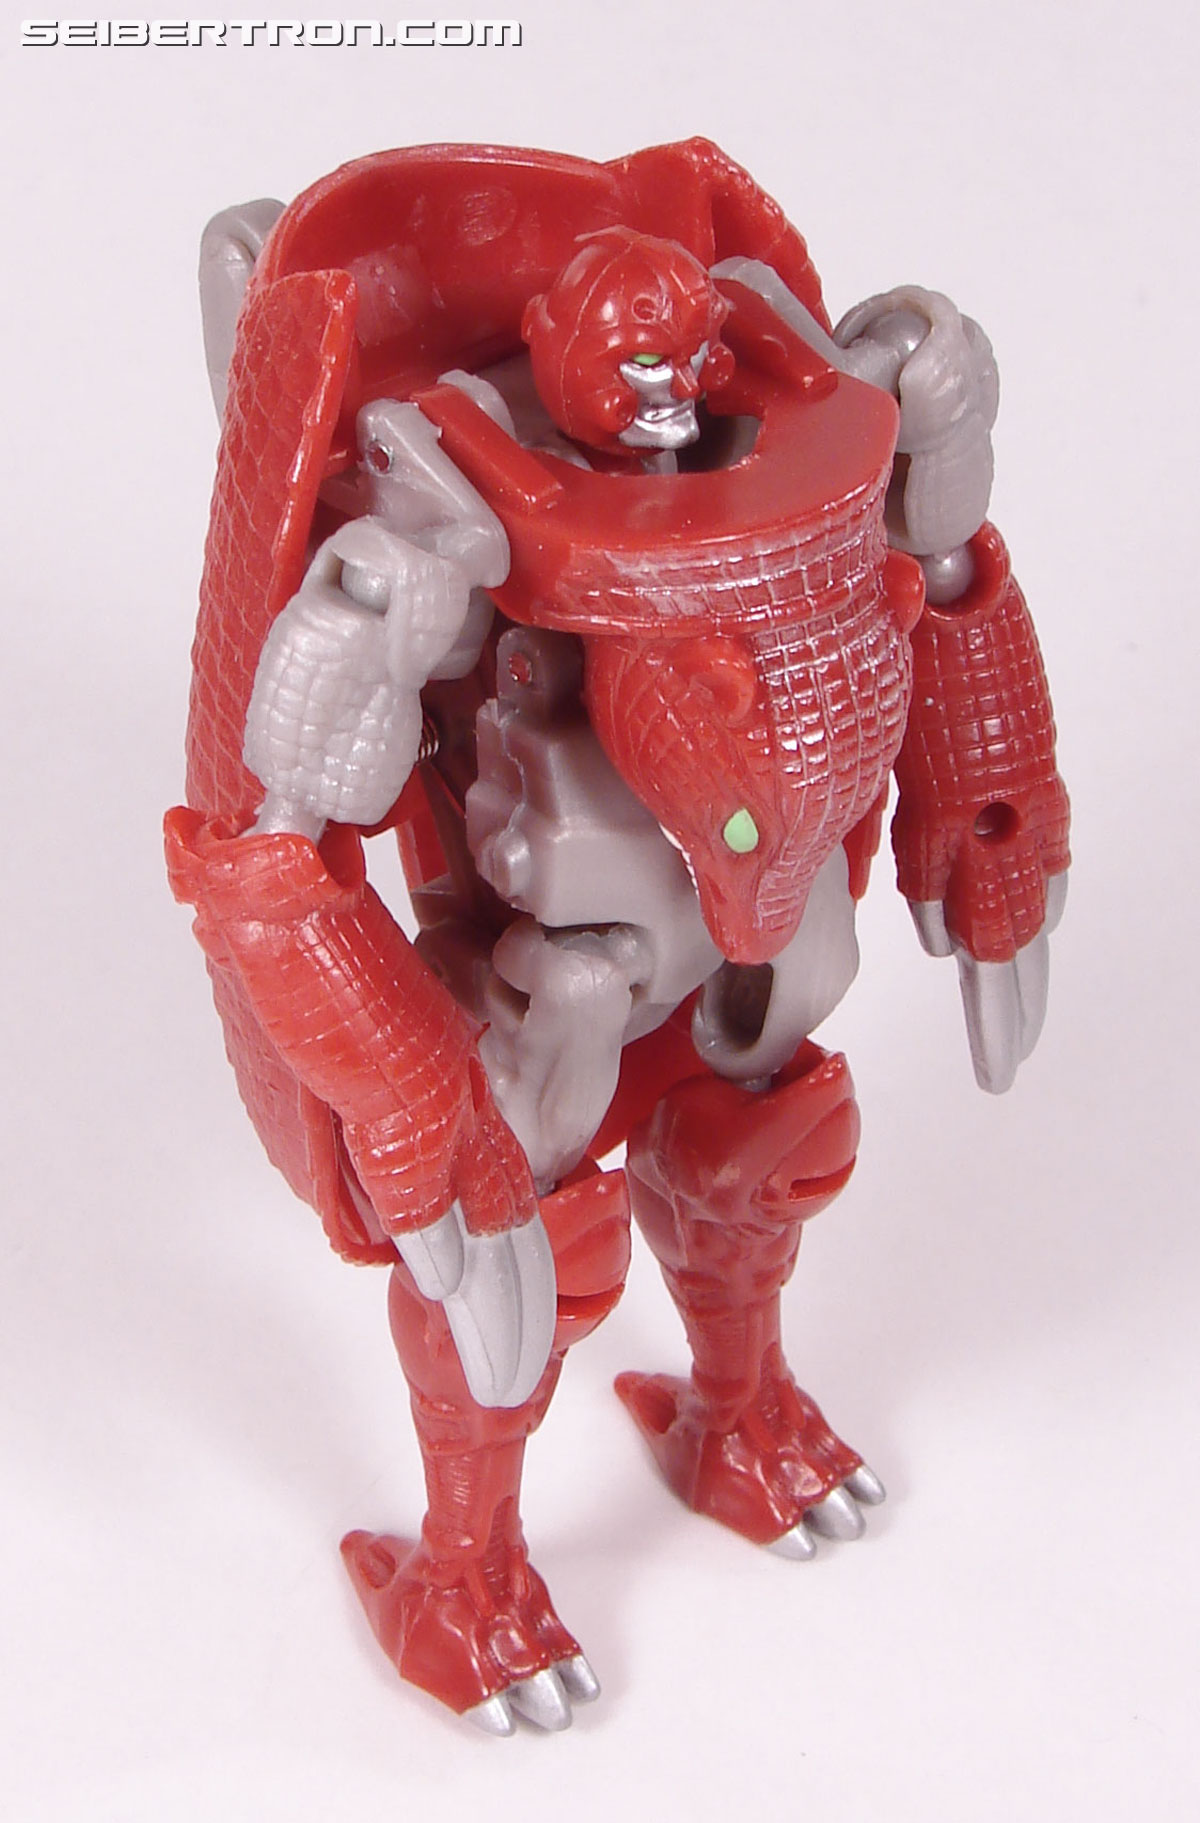 Transformers Beast Wars Neo Bump (Image #45 of 83)